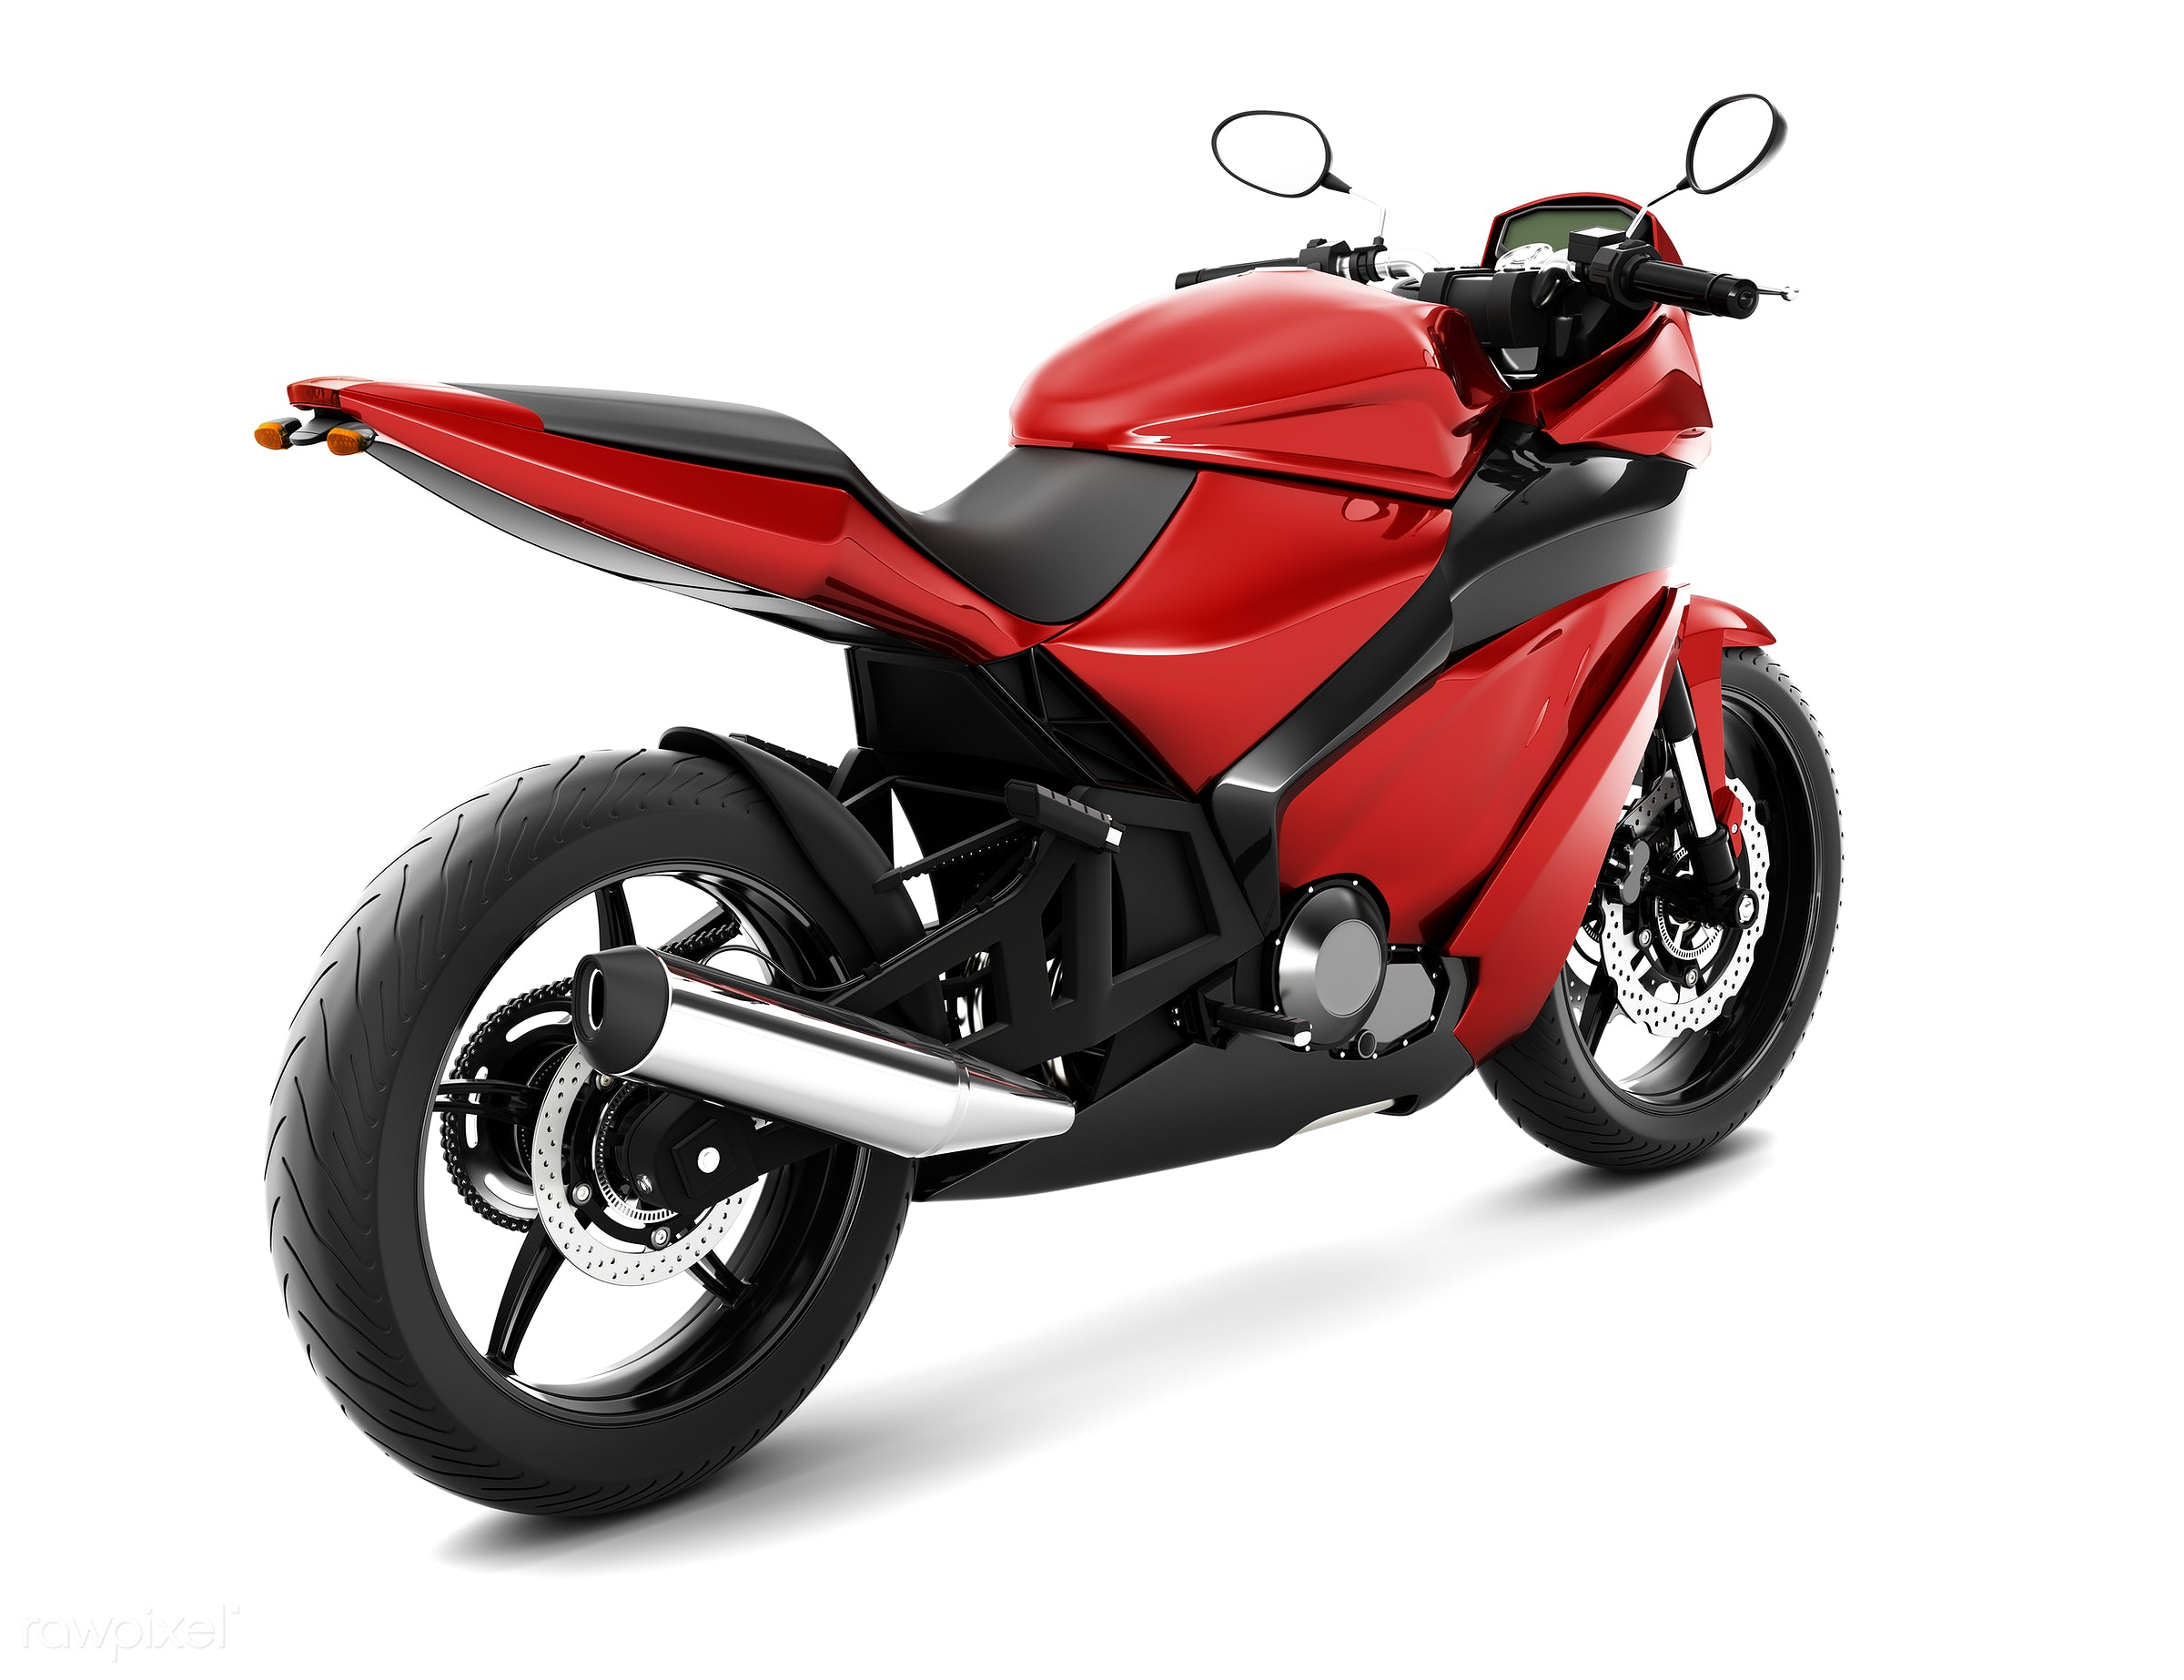 Three dimensional image of motor bike - bike, 3d, automobile, automotive, cool, graphic, holiday, illustration, itinerary,...